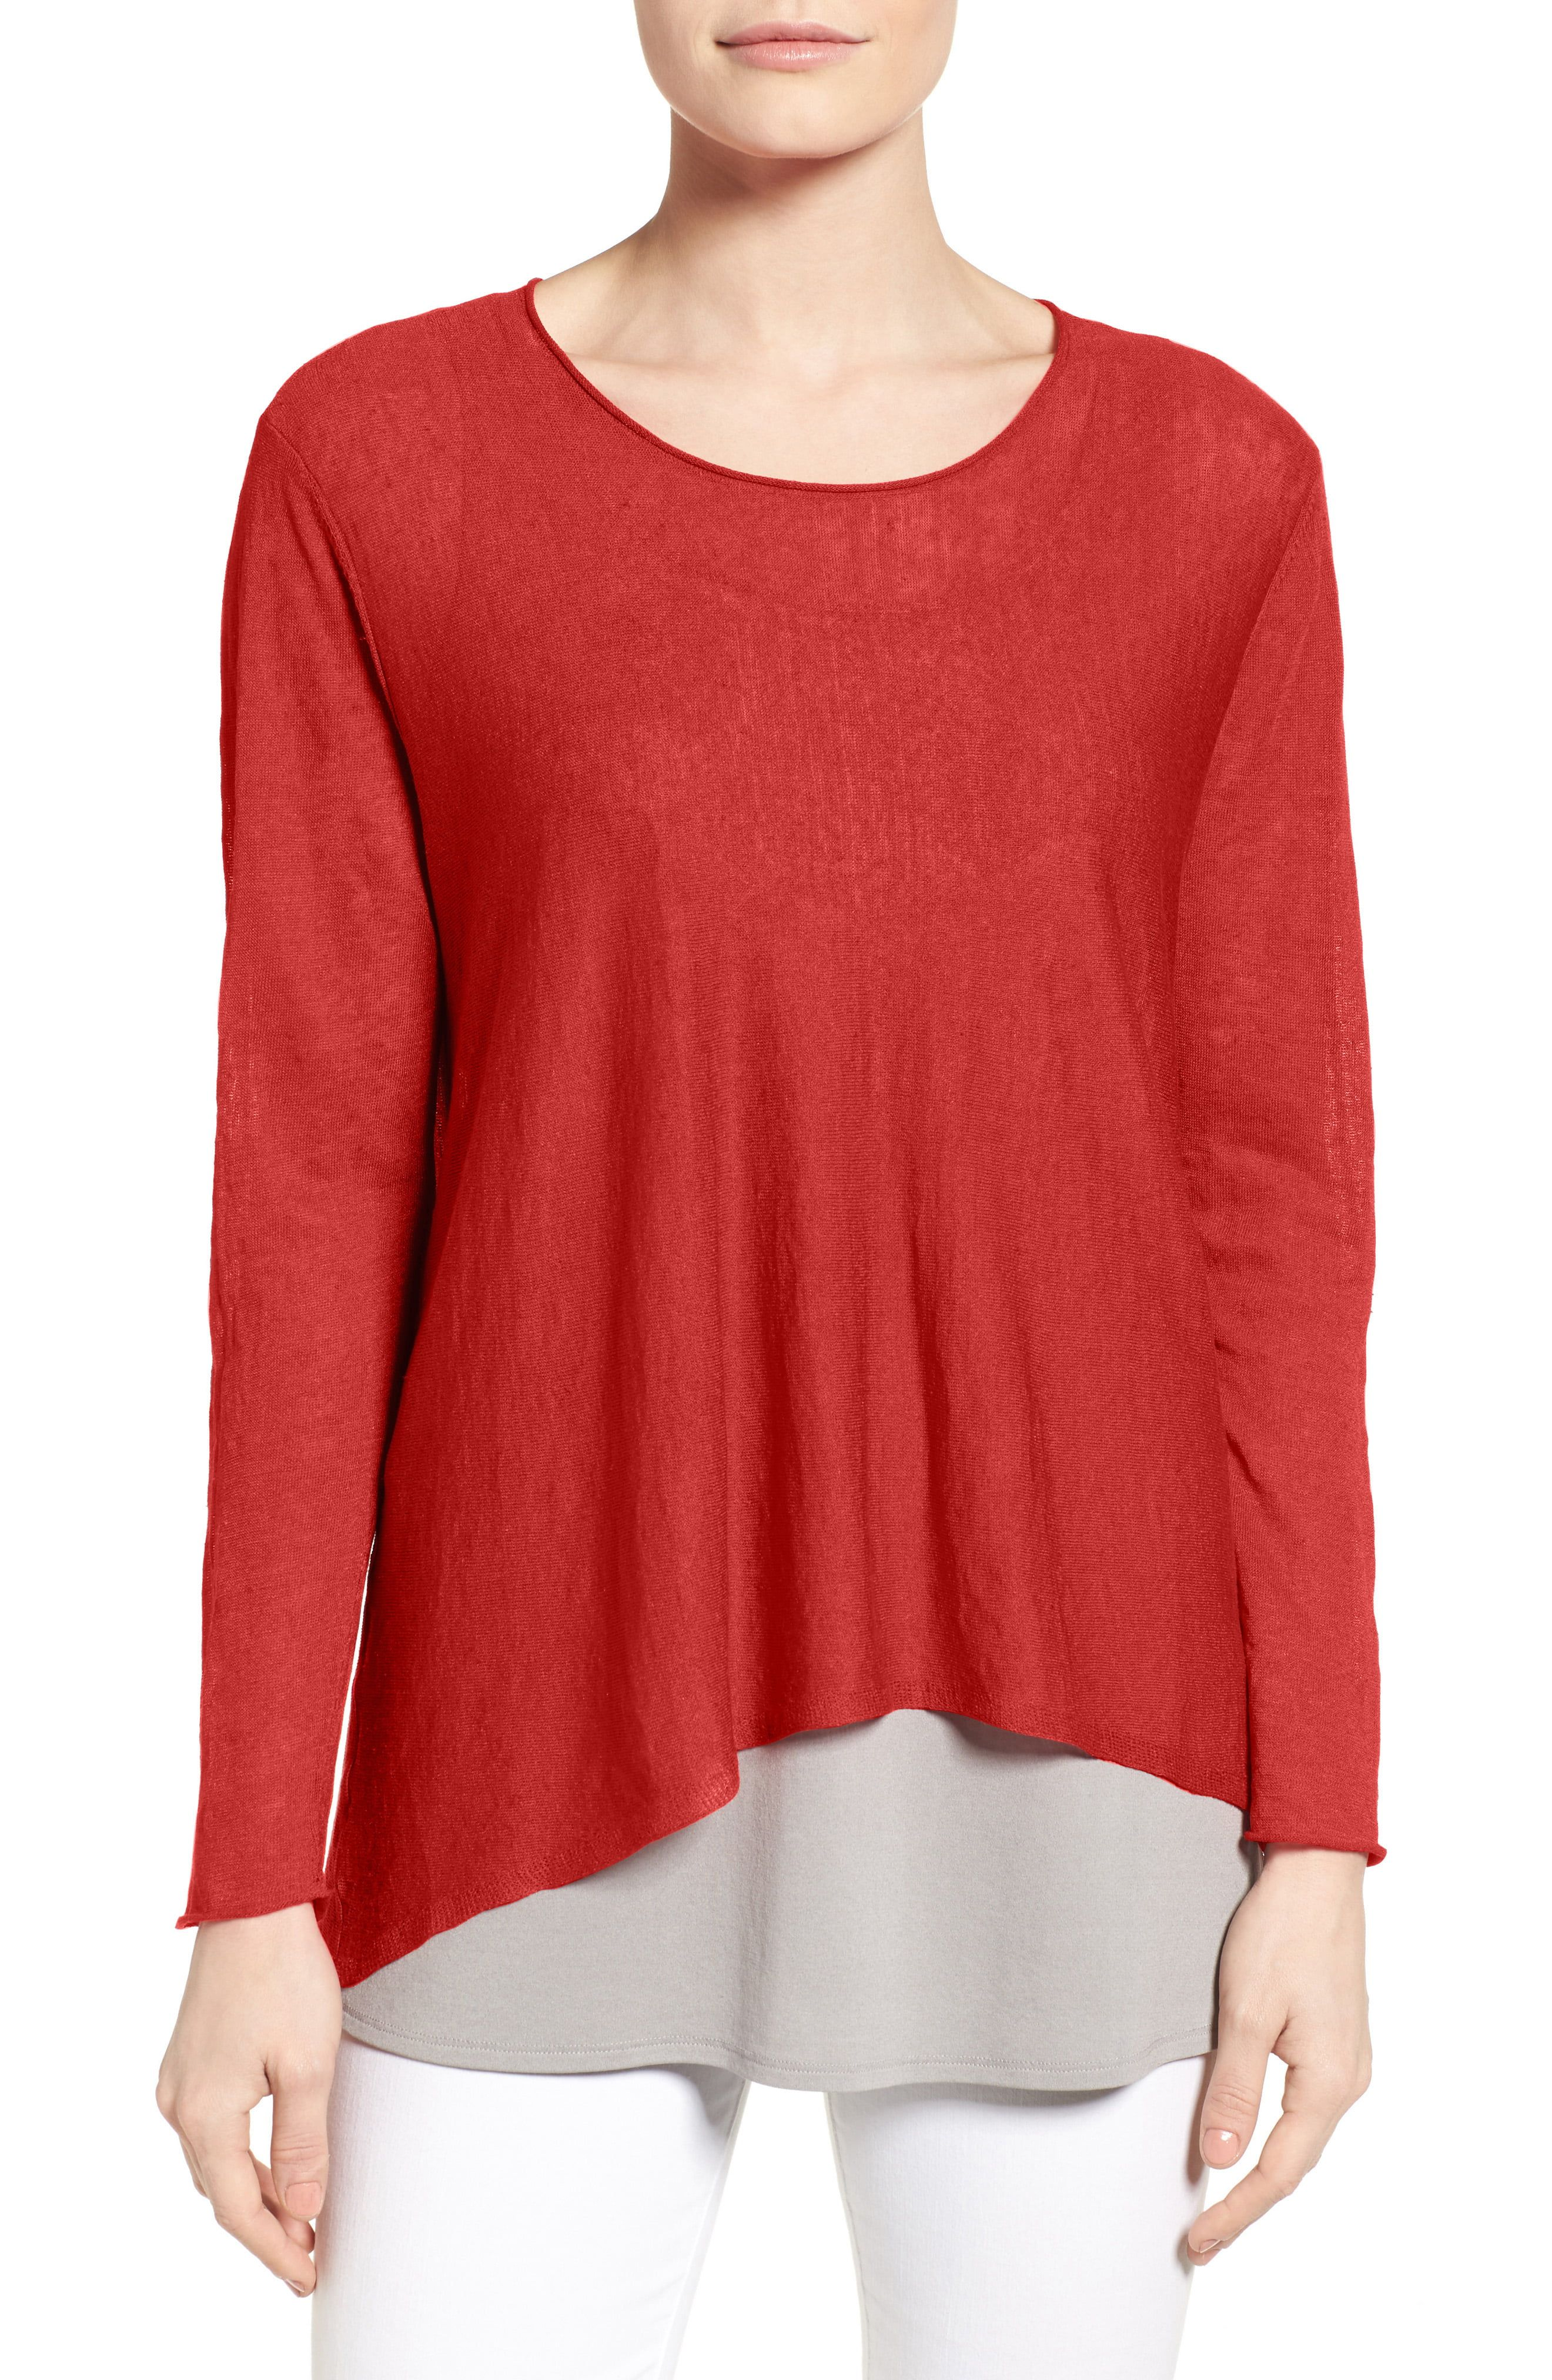 Eileen Fisher Red Womens Size PP Petite Linen Blend Hi-Lo Knit Top